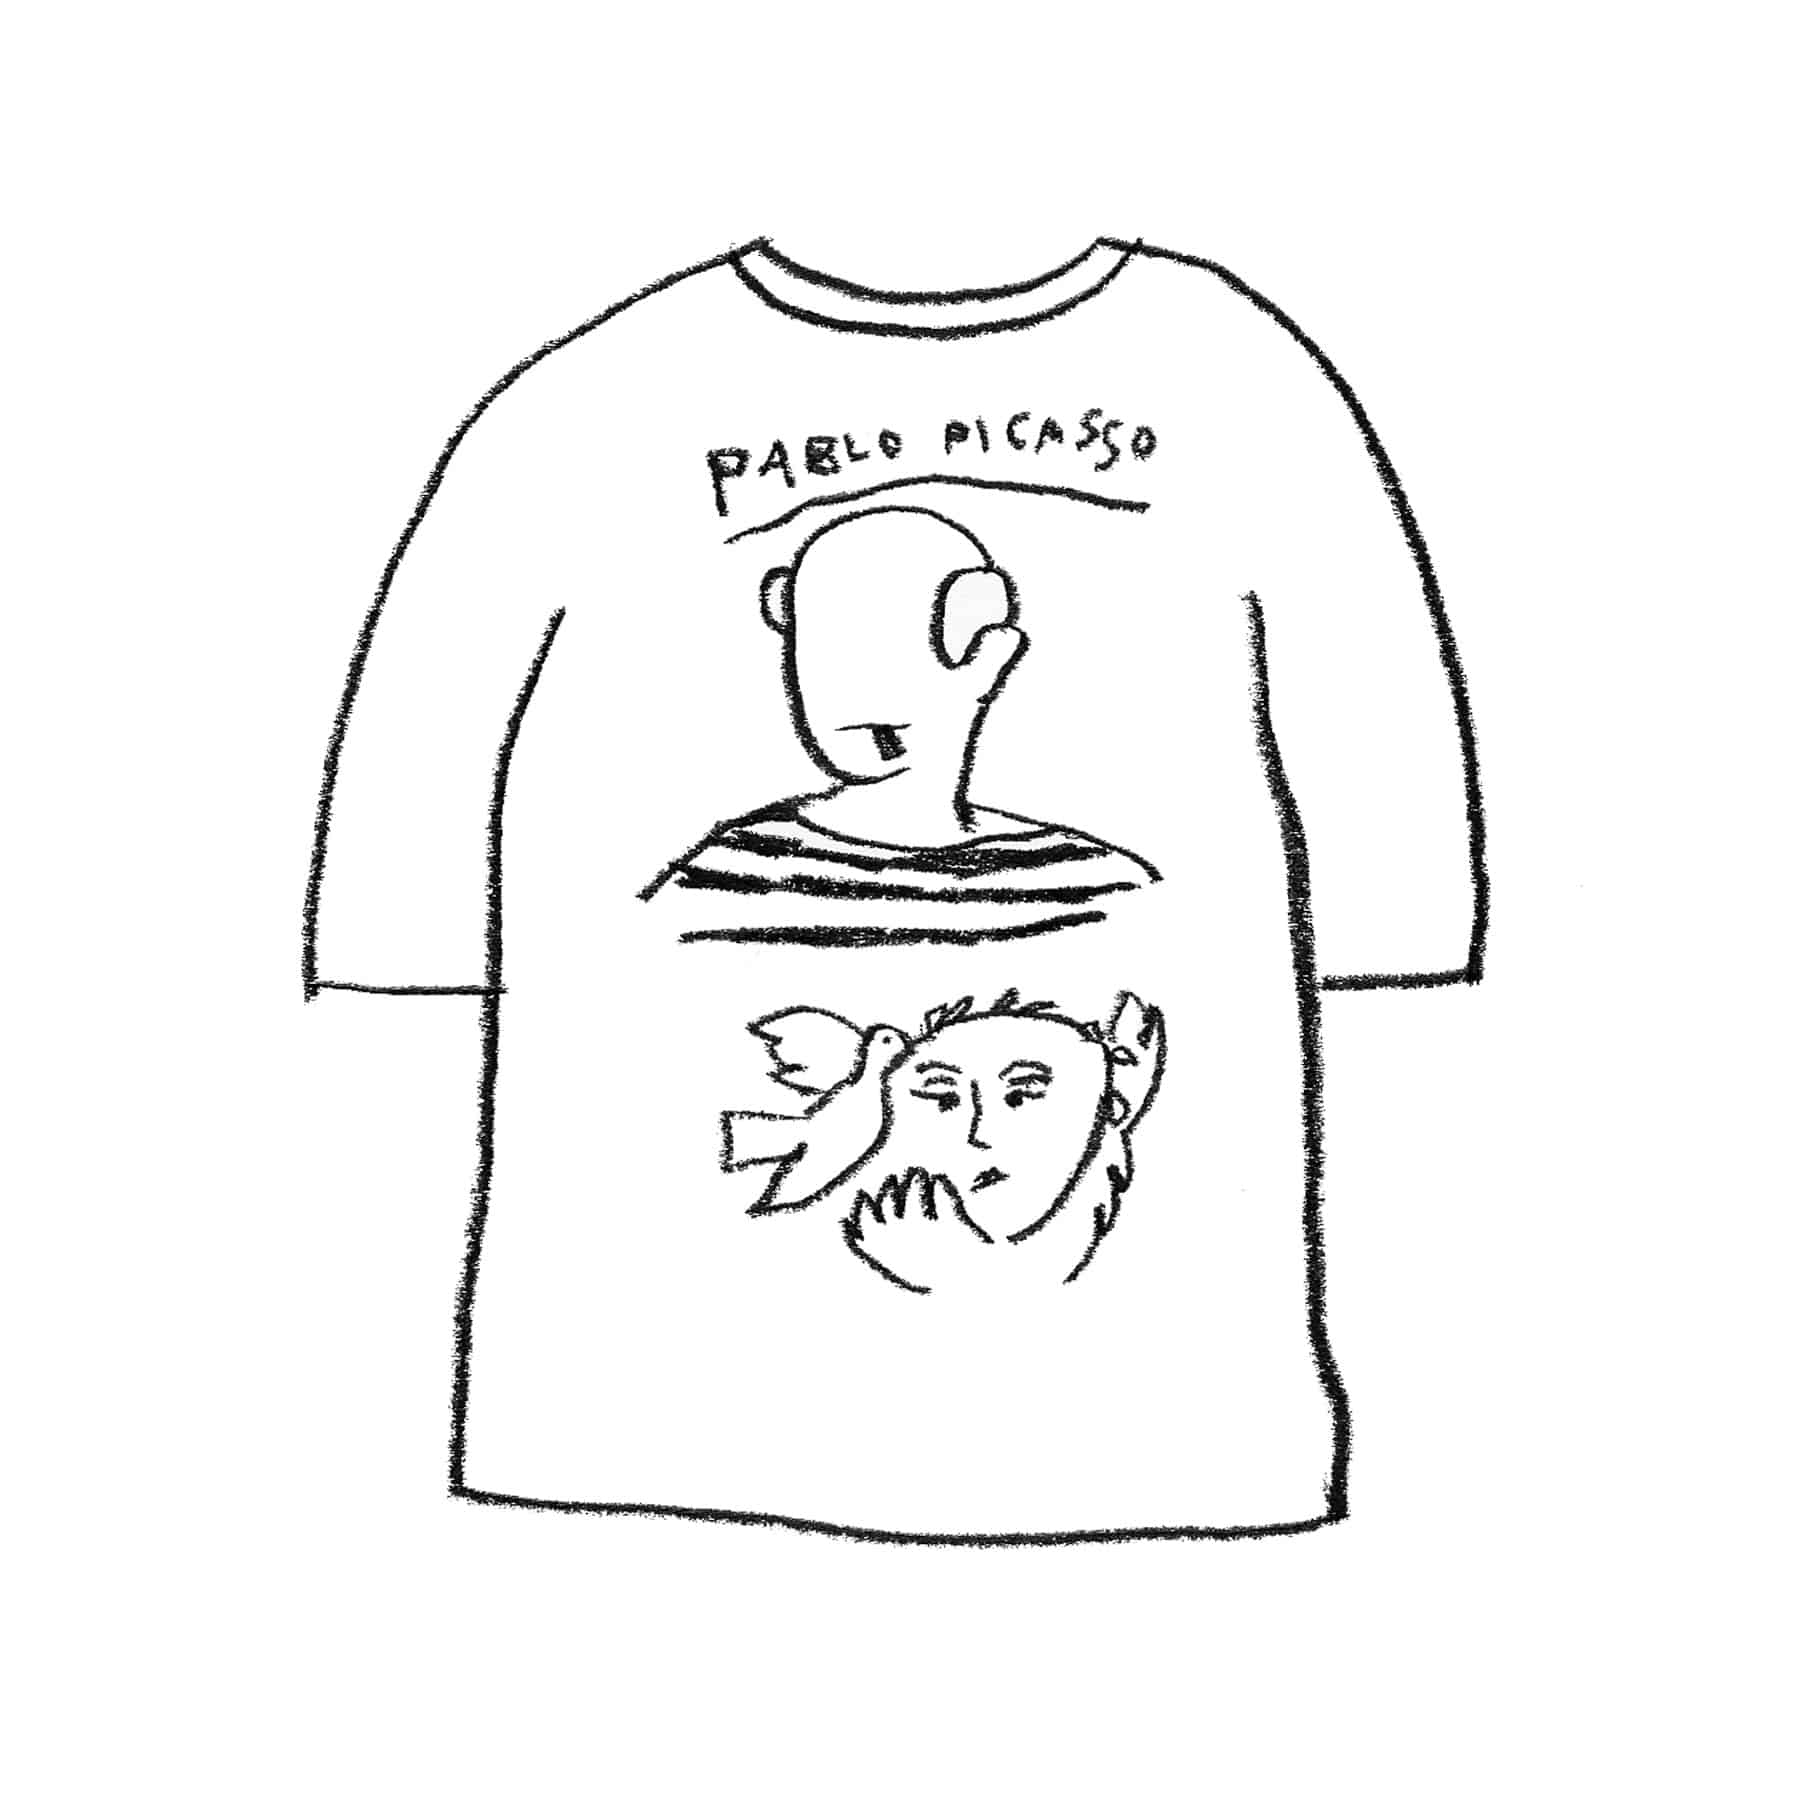 PICASSO 1/2 T-SHIRT